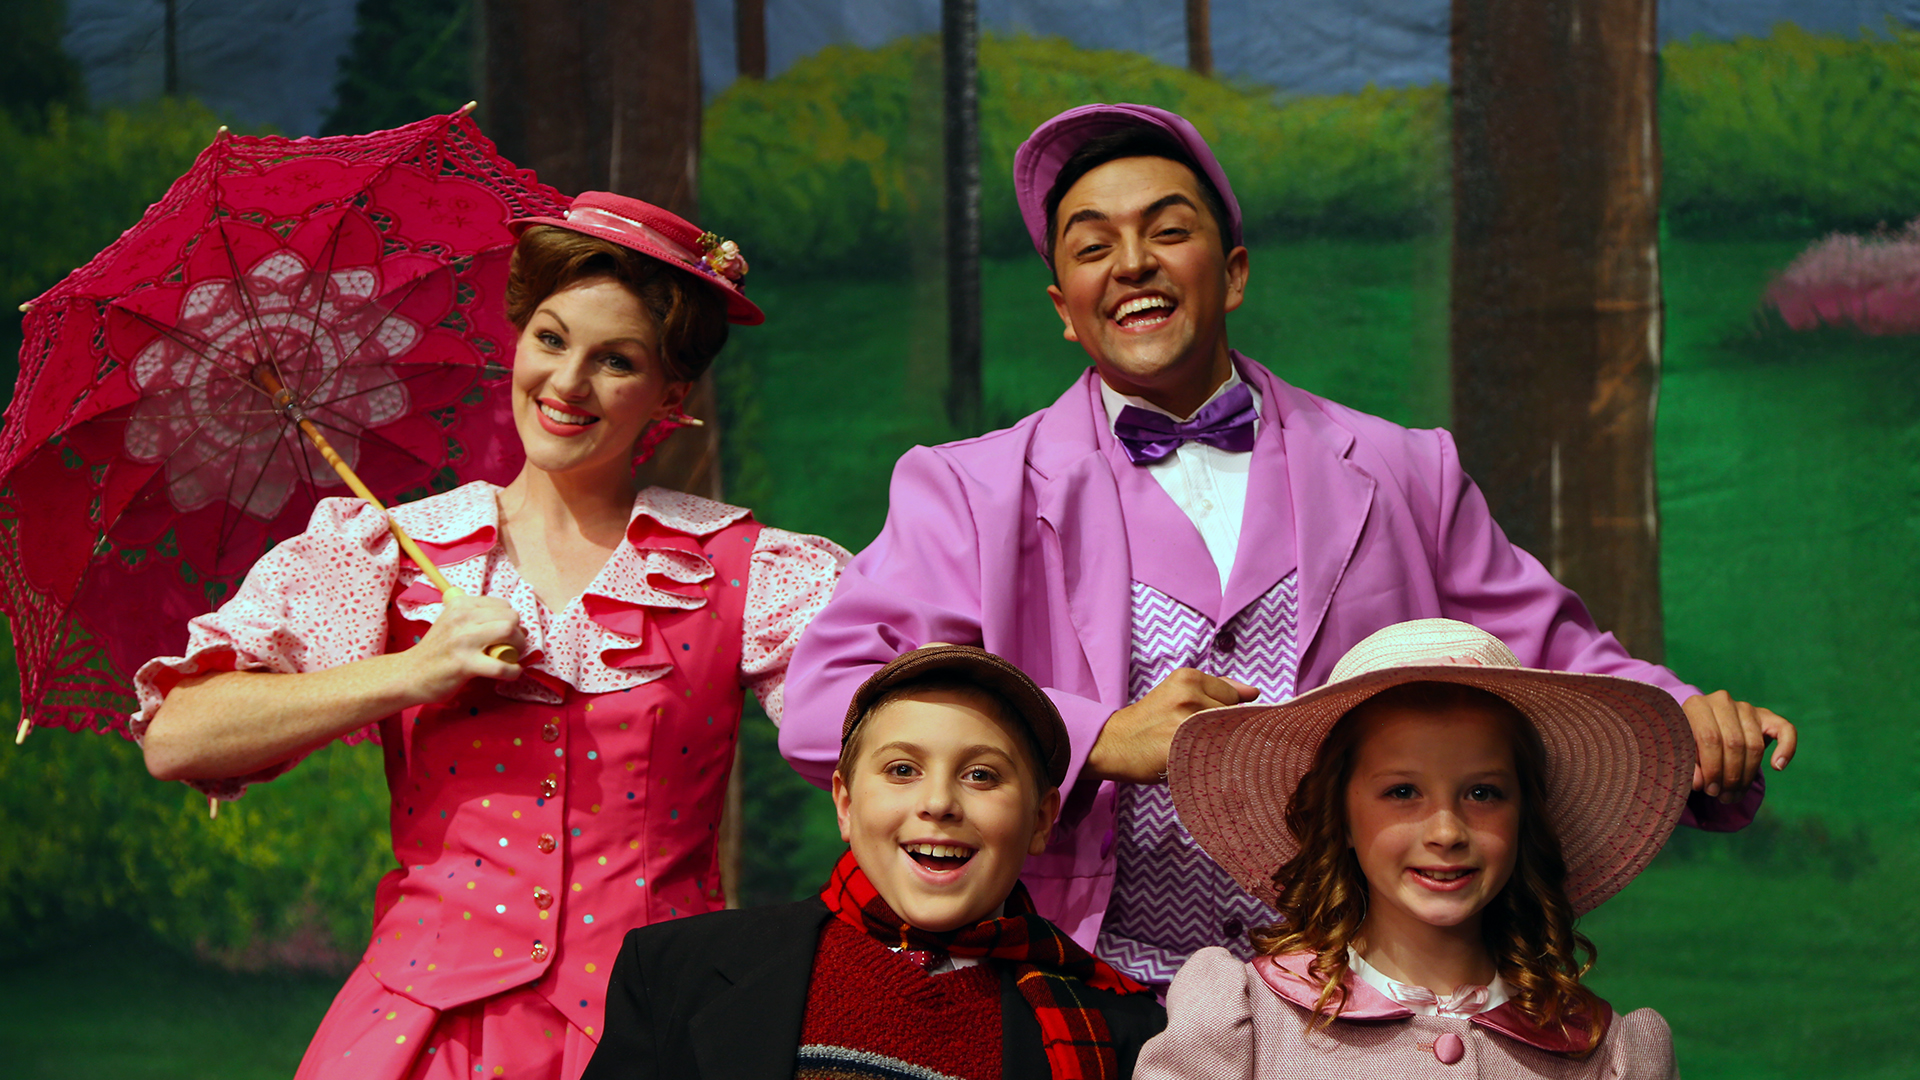 Play Here's Activity Roundup for Sept. 28 to Oct. 5: 'Mary Poppins,' haunted houses, fundraisers, more